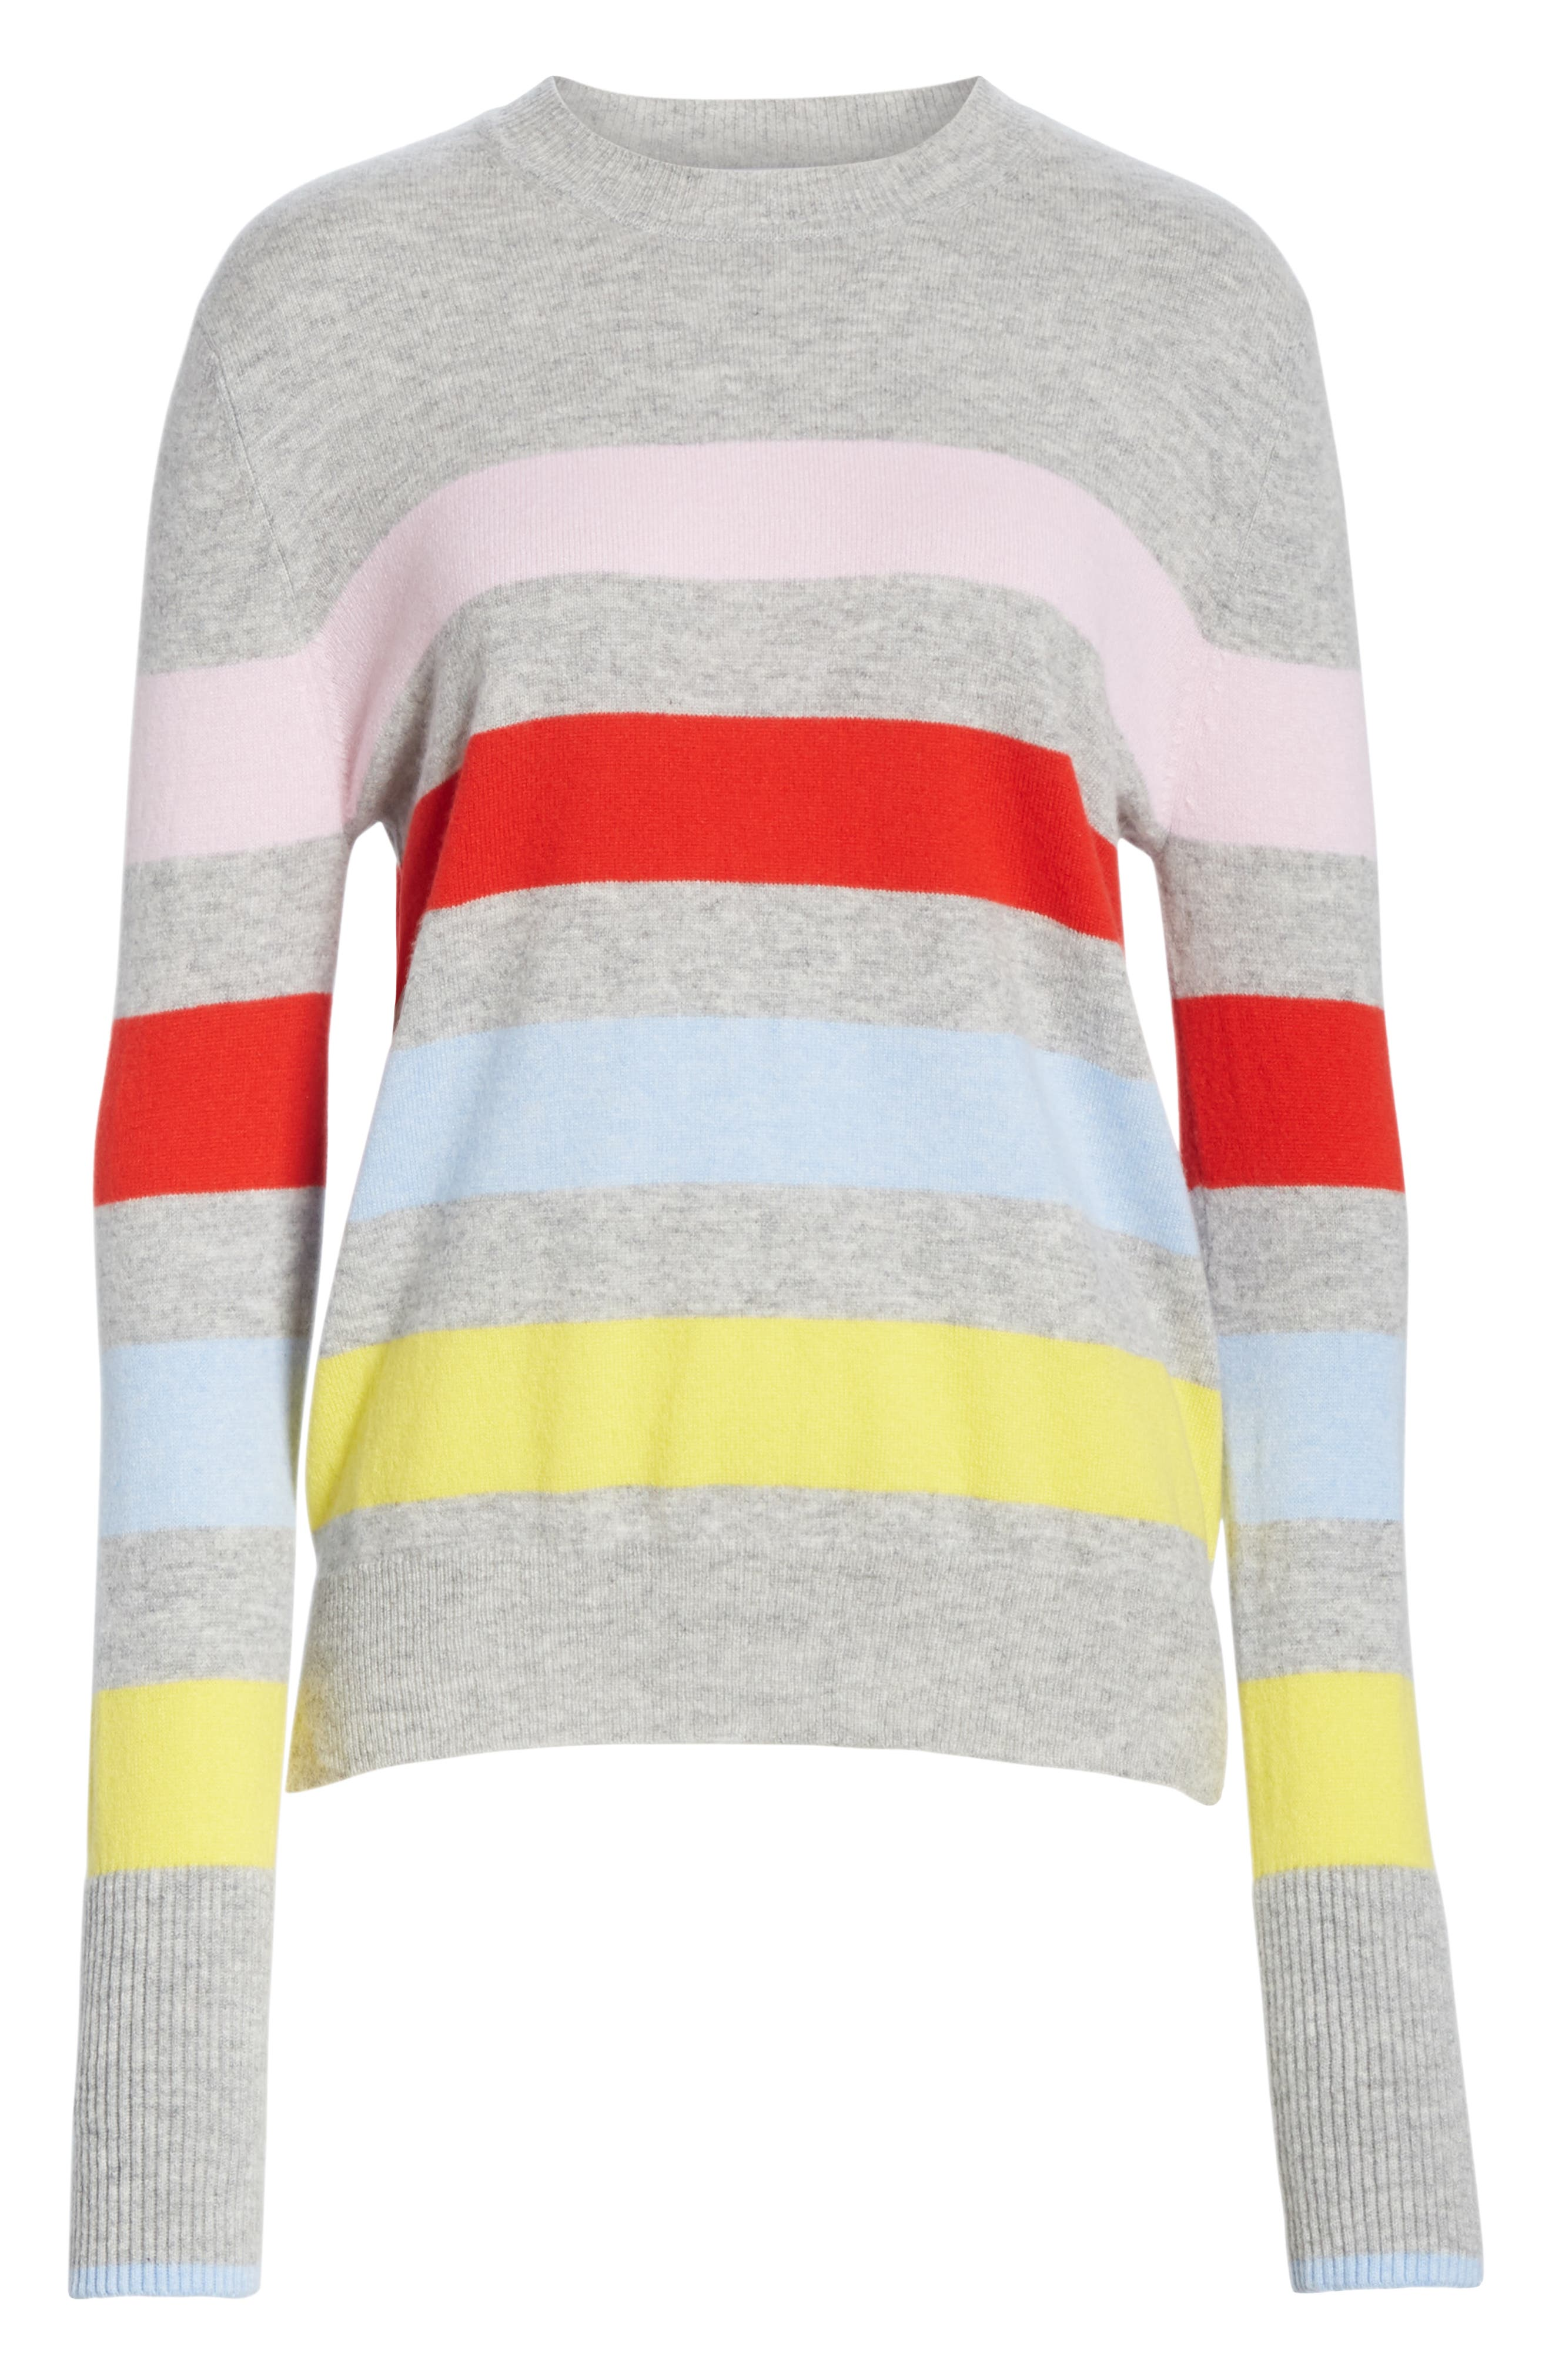 AAA Candy Stripe Cashmere Sweater,                             Alternate thumbnail 6, color,                             020